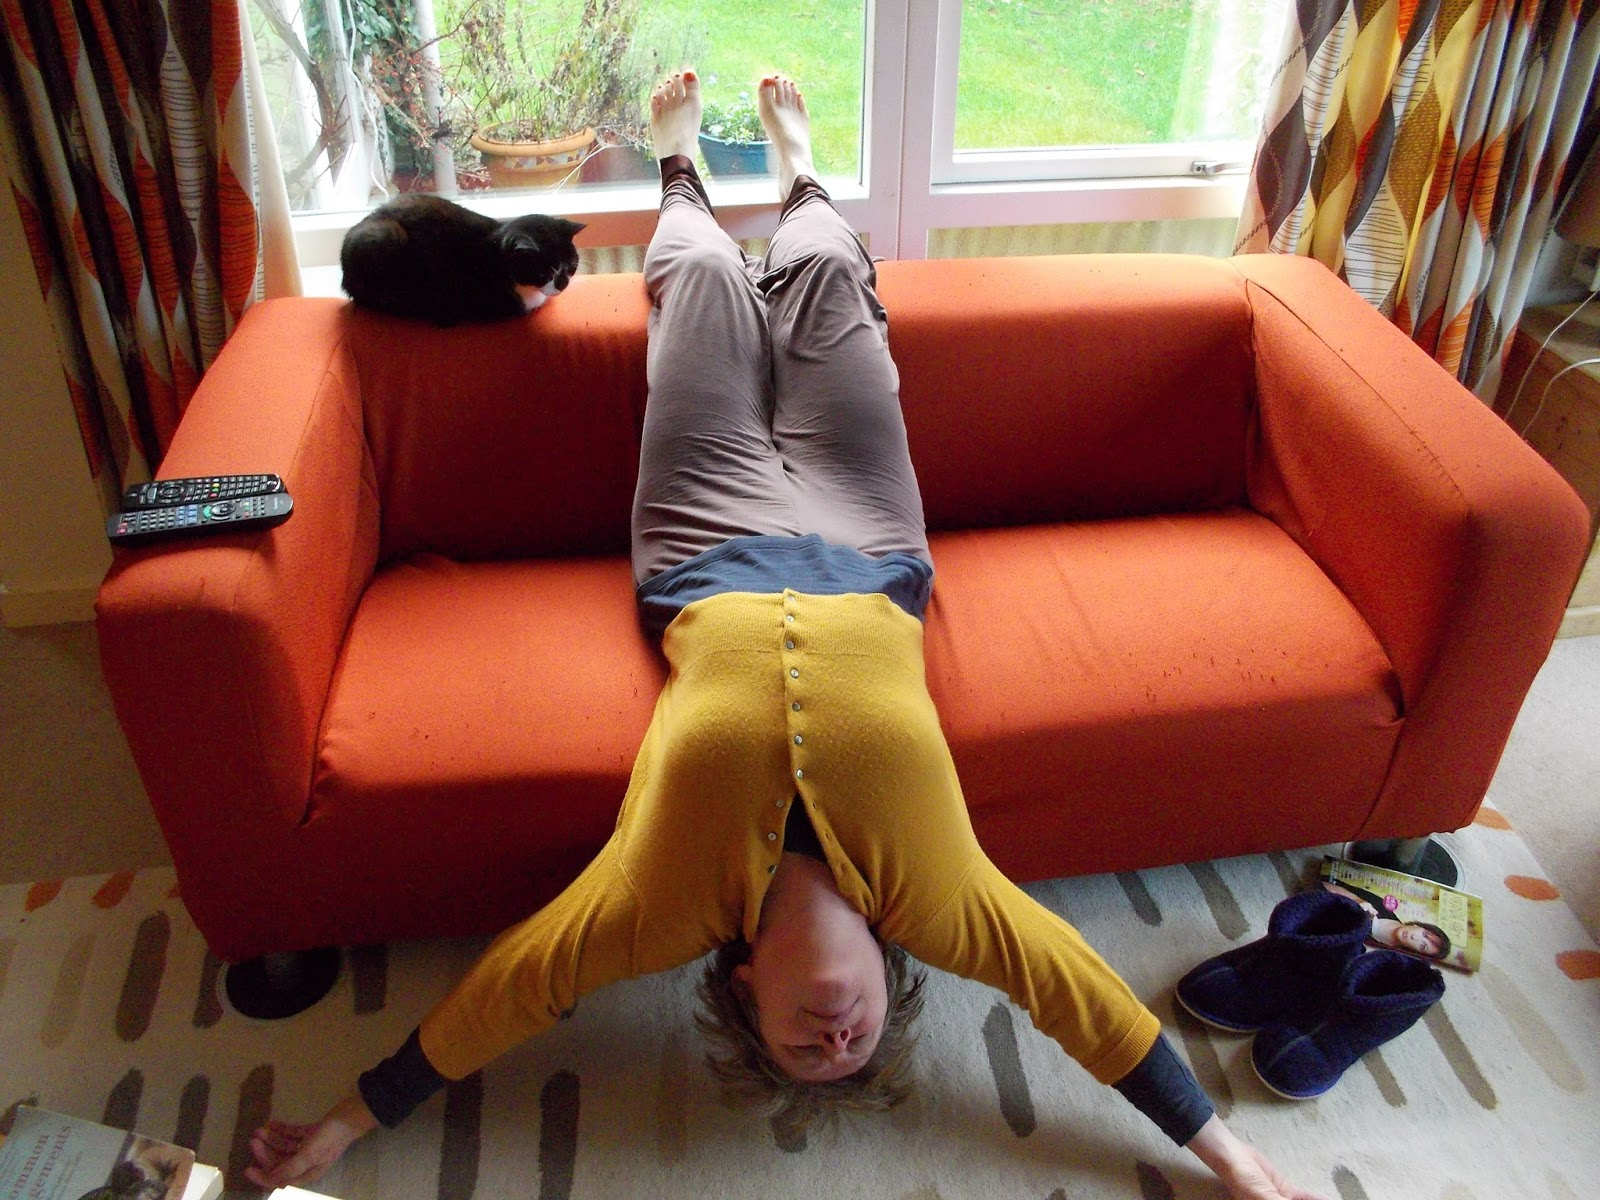 yoga sofa brown covers be a couch potato with your slippers on bit like shoulderstand in some ways